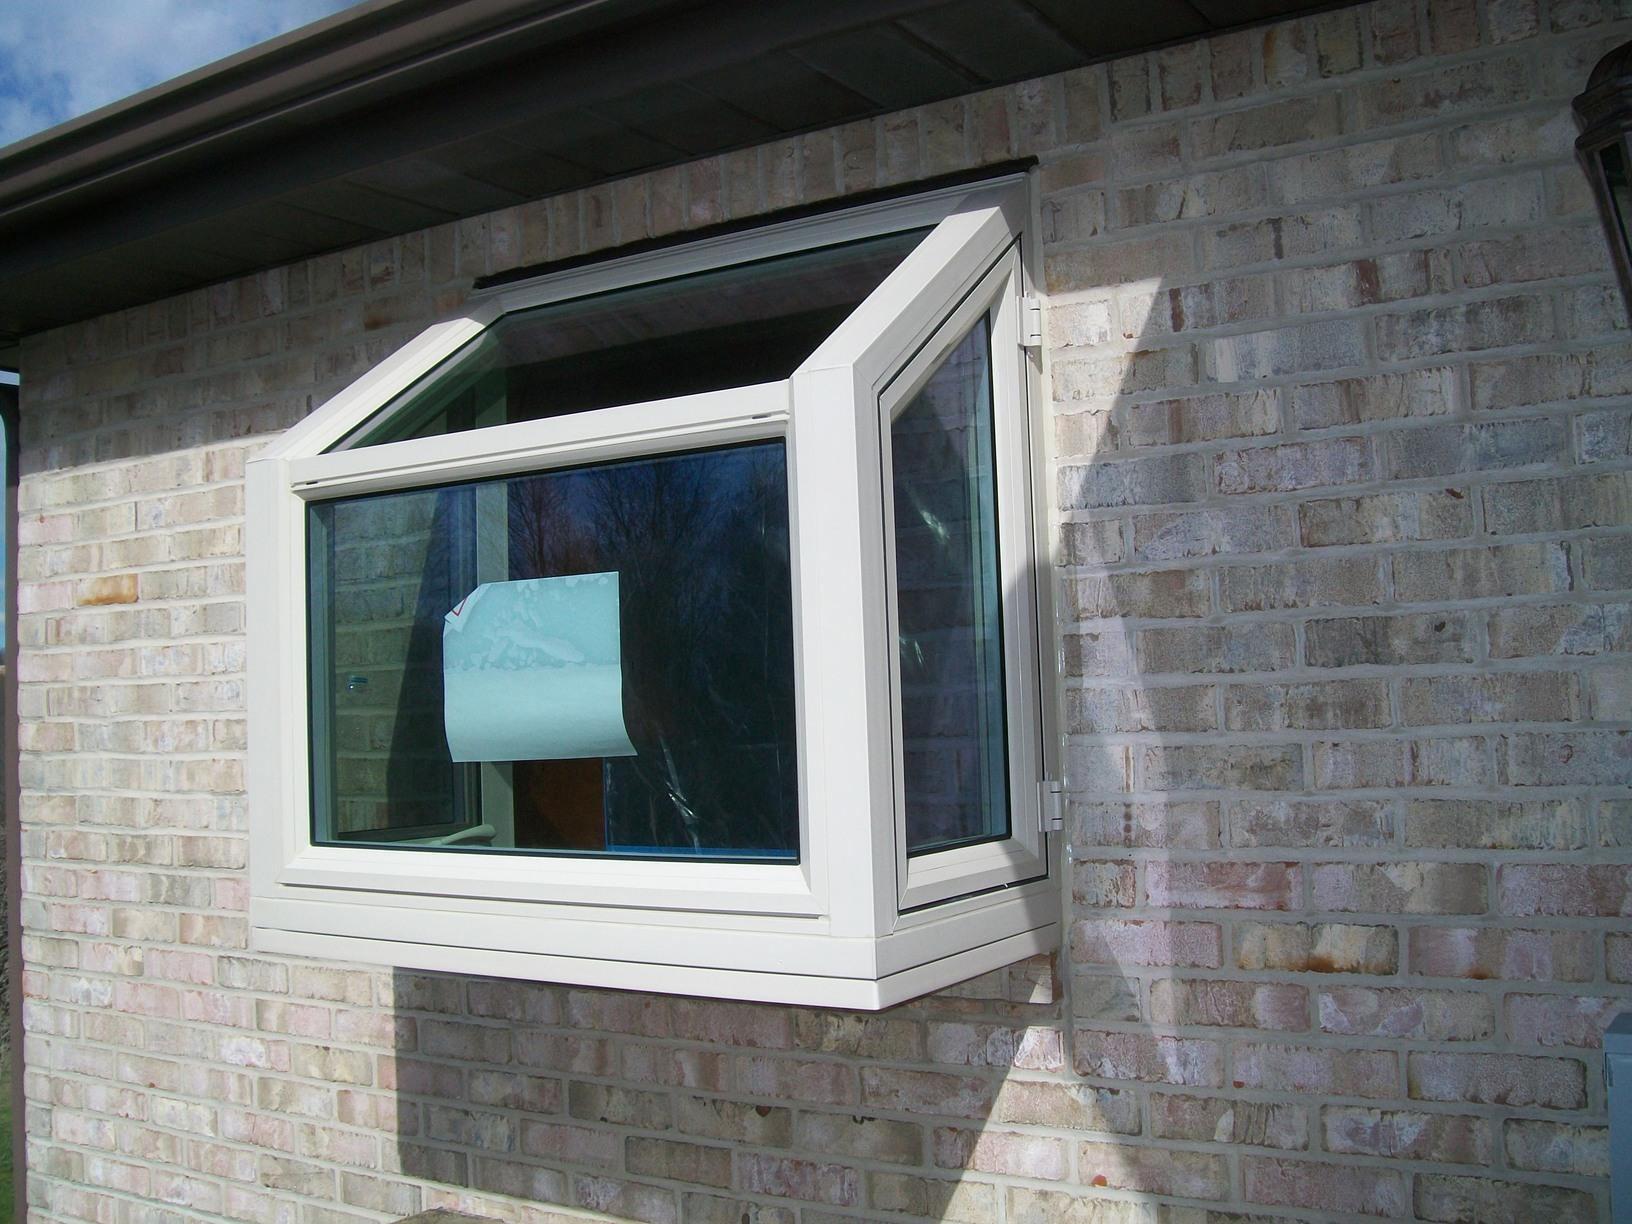 Double hung window replaced by garden window in Greensburg, PA - After Photo